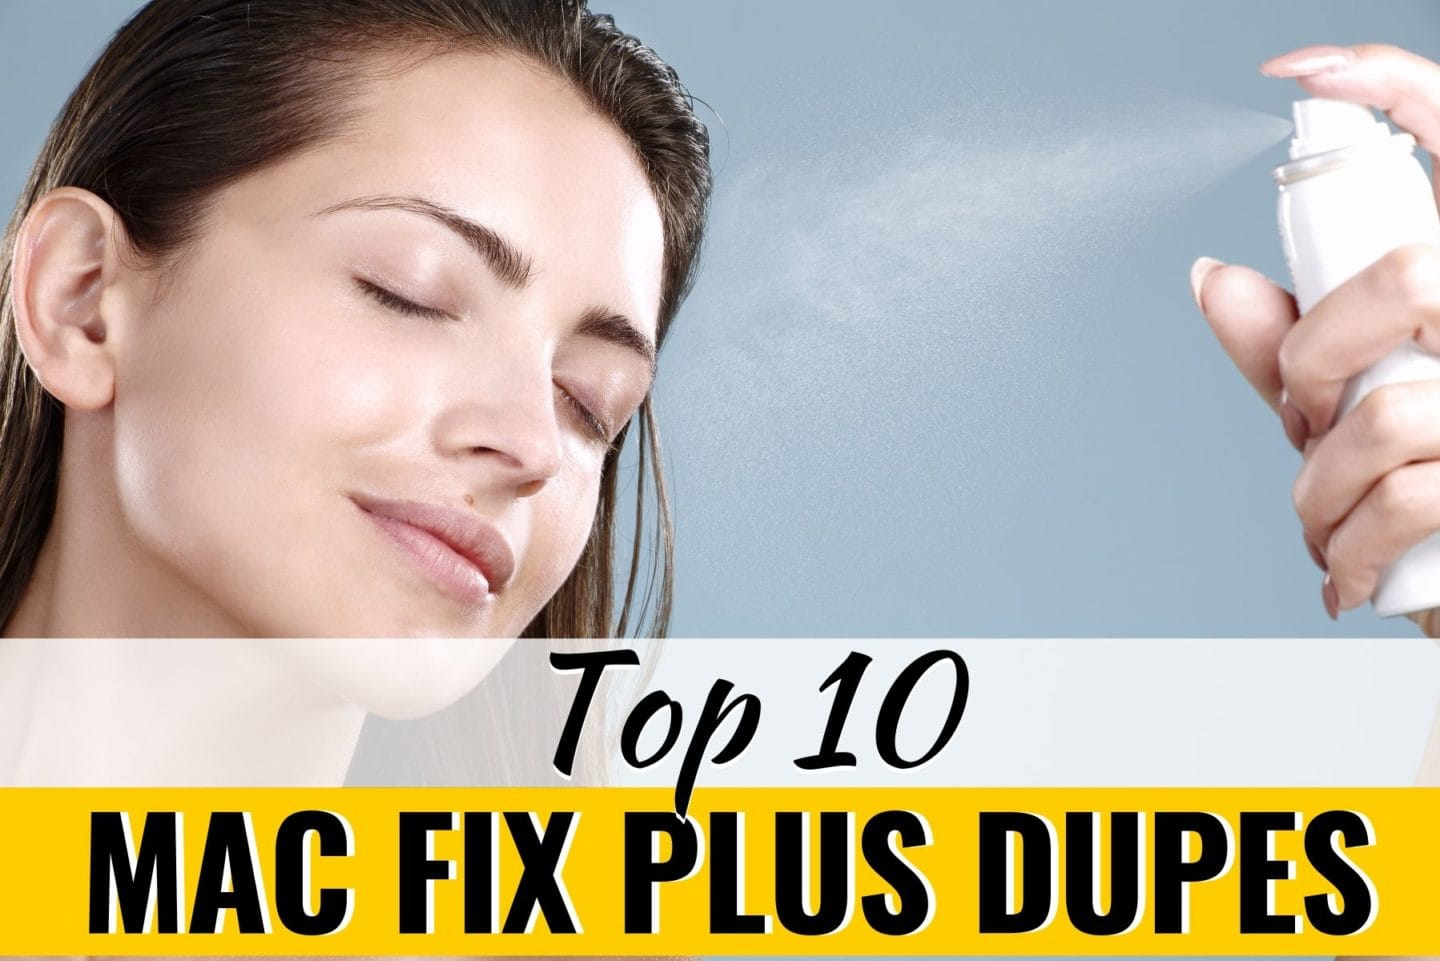 An epic roundup of the top 10 best Mac Fix Plus dupes setting sprays guaranteed to lockdown your makeup all day. These dupes rival the pricier Mac Prep + Prime dollar for dollar and start at $5!